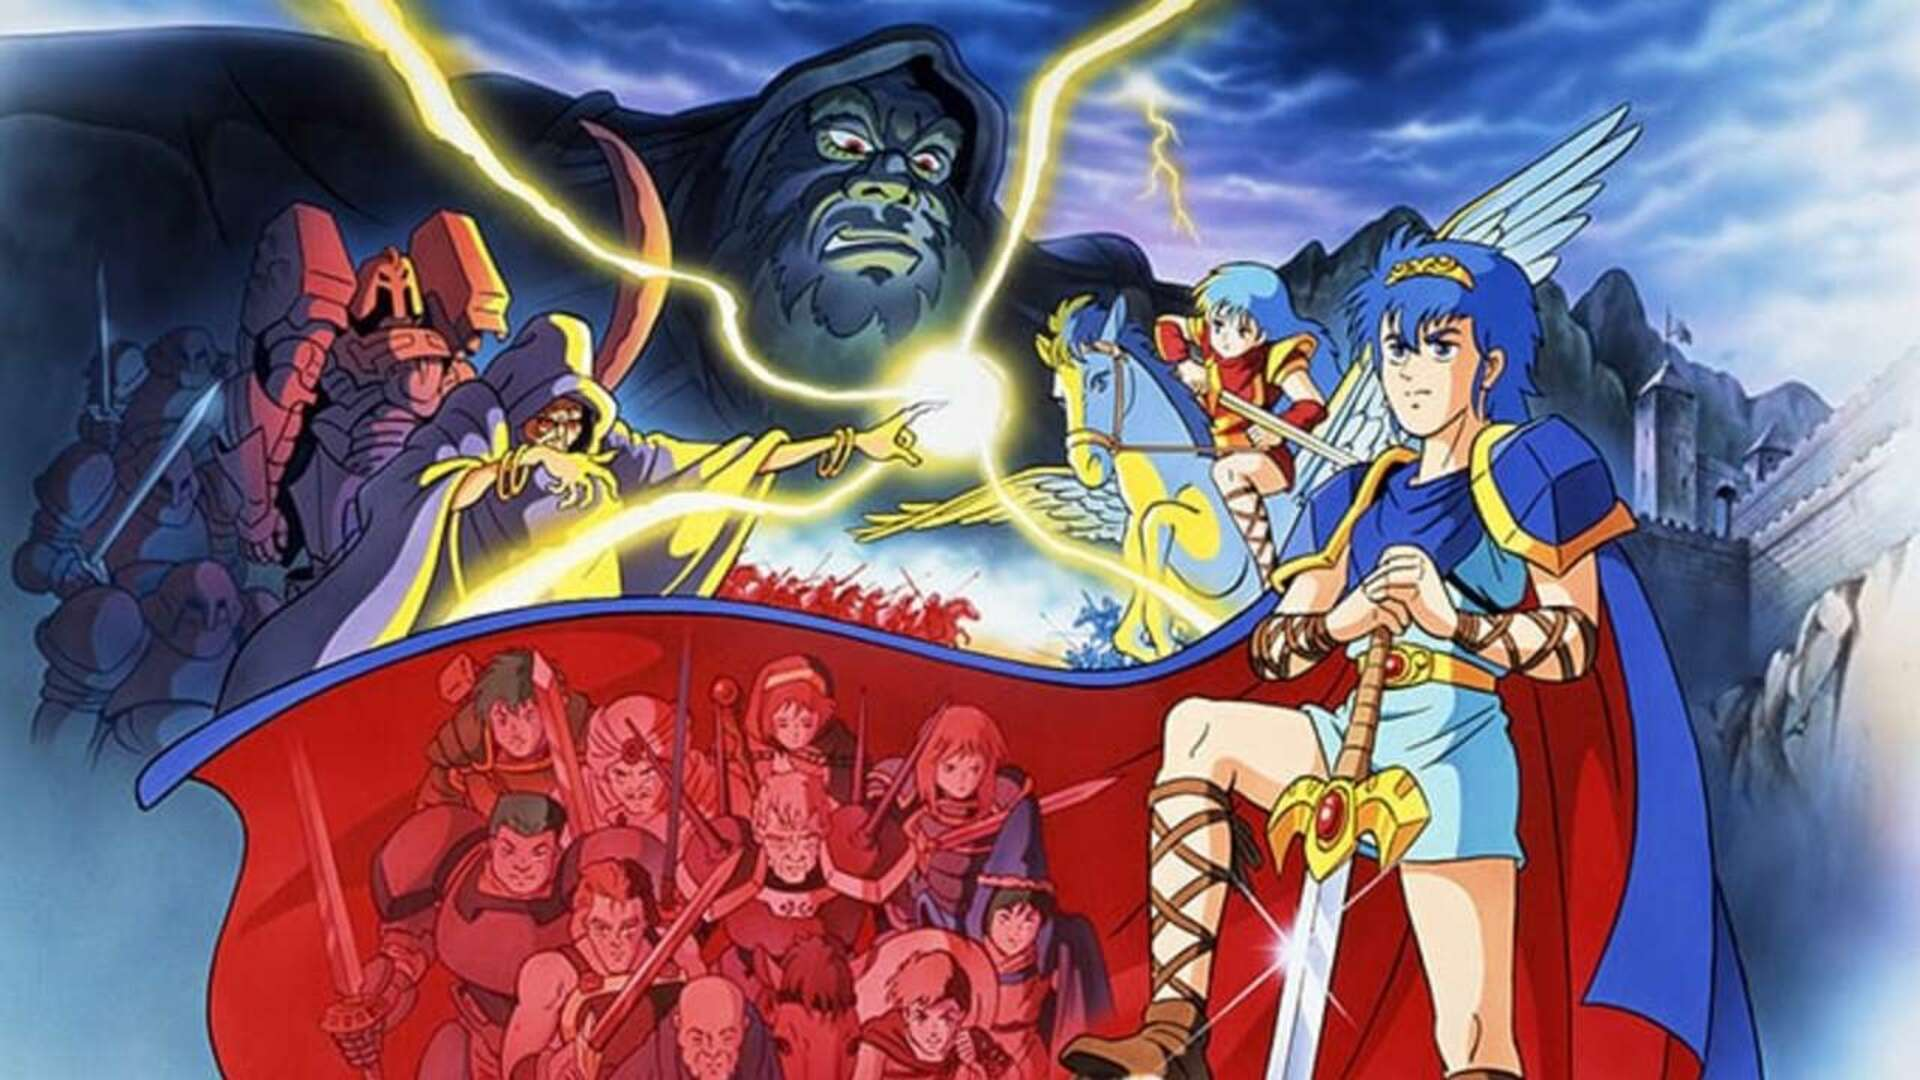 I Thought Fire Emblem: Shadow Dragon & the Blade of Light Would be Too Archaic. I Was Wrong